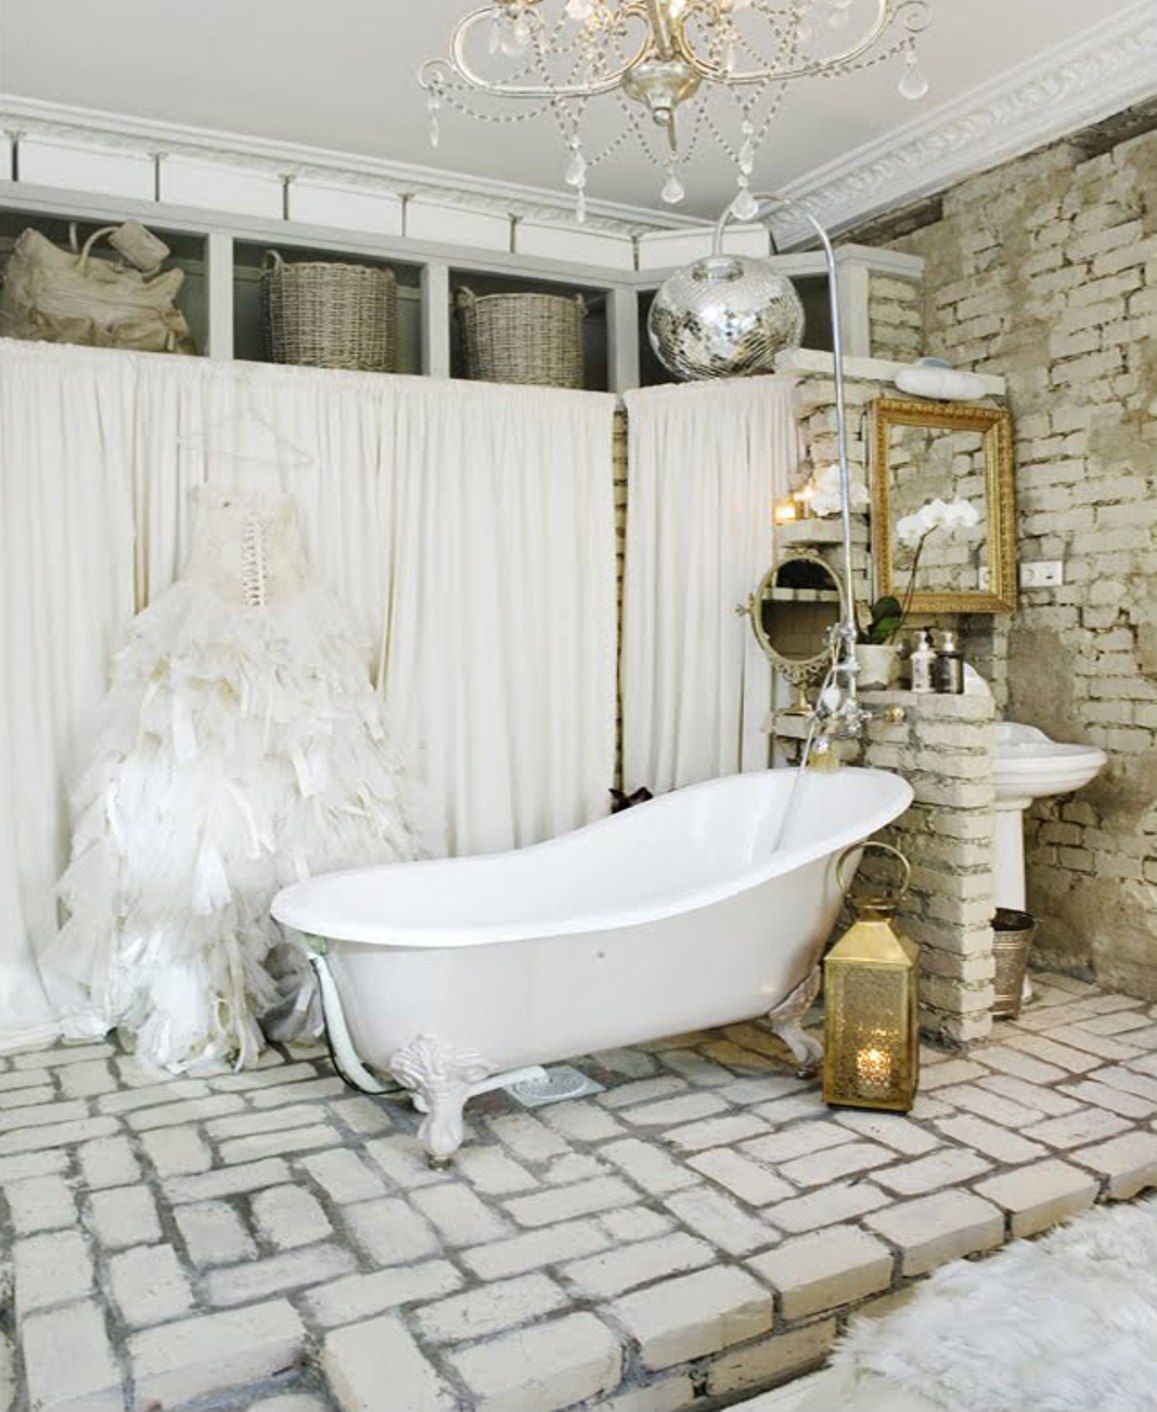 wall bathroom vintage download image with nice accessories tiles howiezine decor and